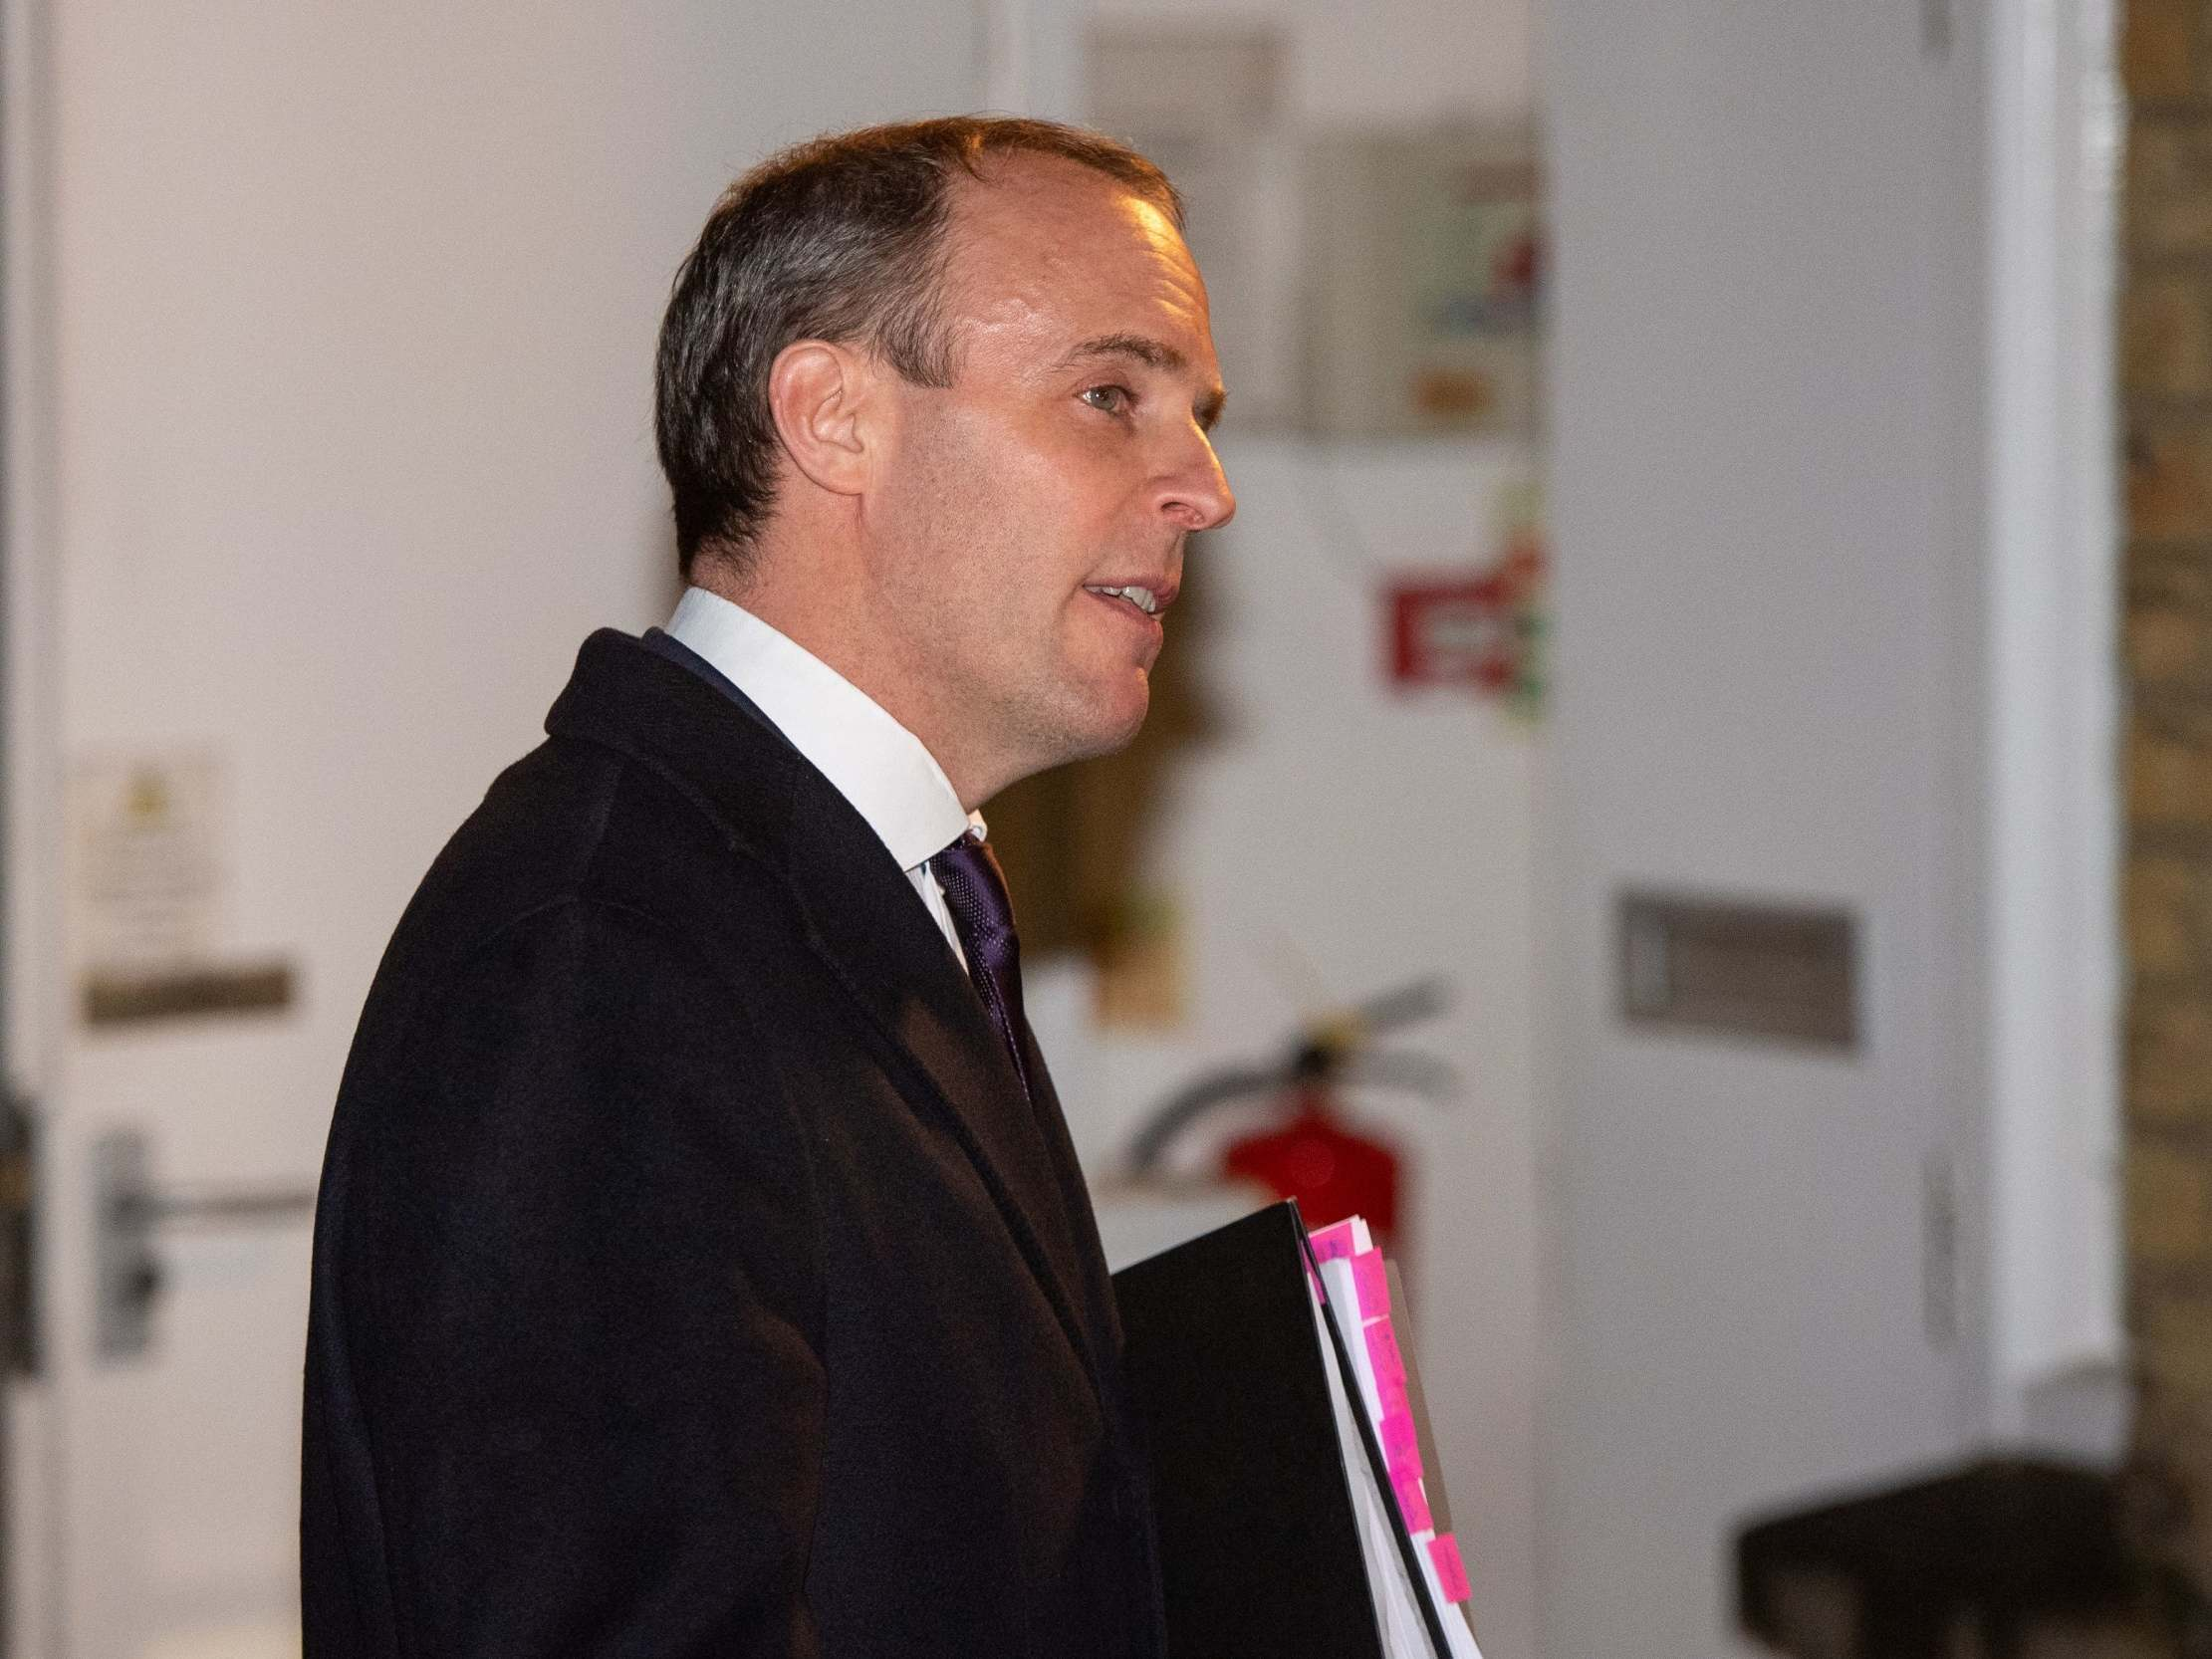 General election: Dominic Raab 'not really' worried about losing his seat despite latest poll